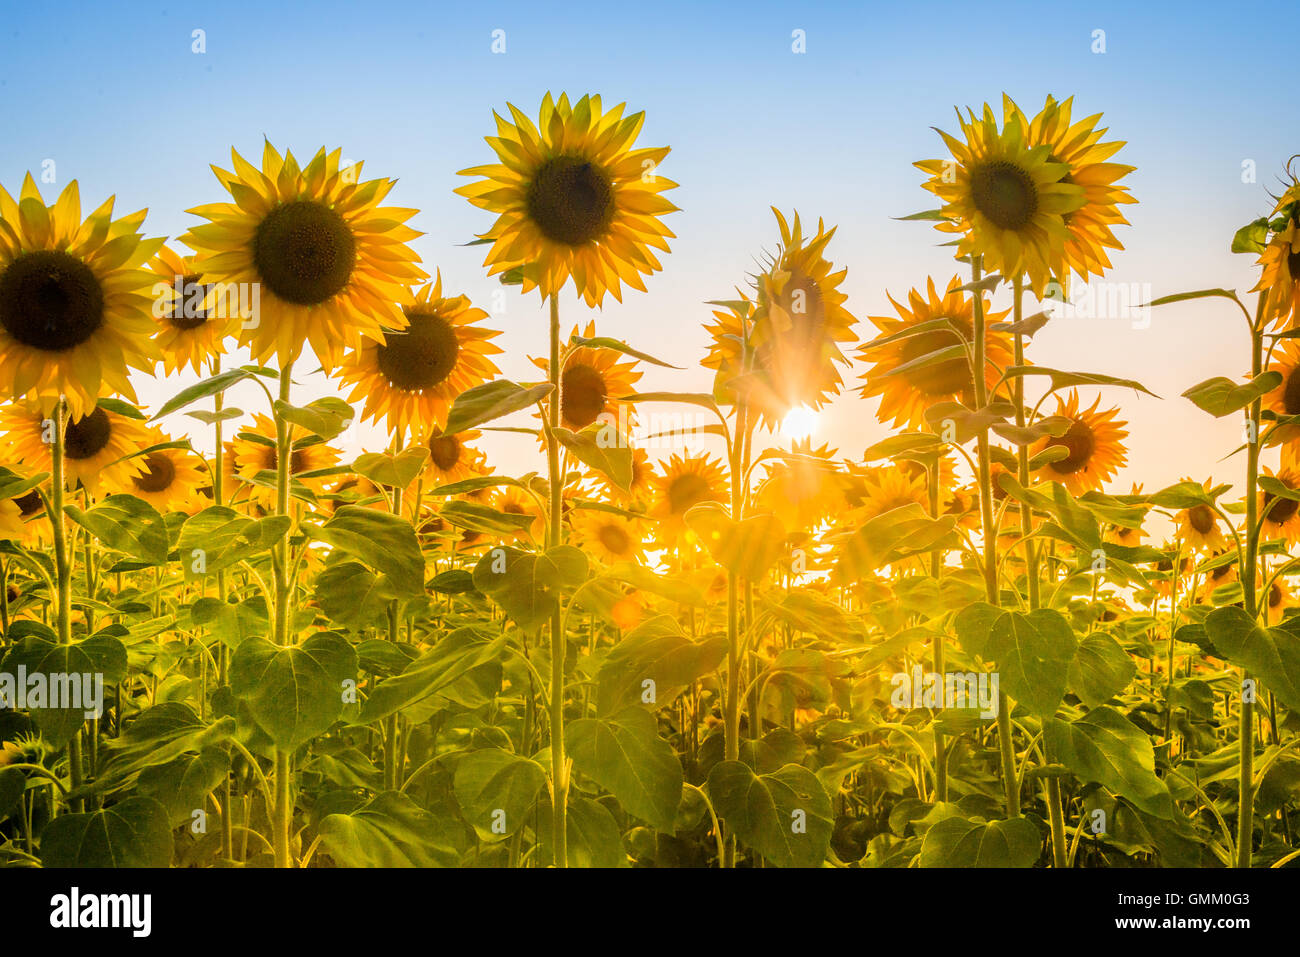 Rays of the rising sun breaking through sunflower plants field. - Stock Image